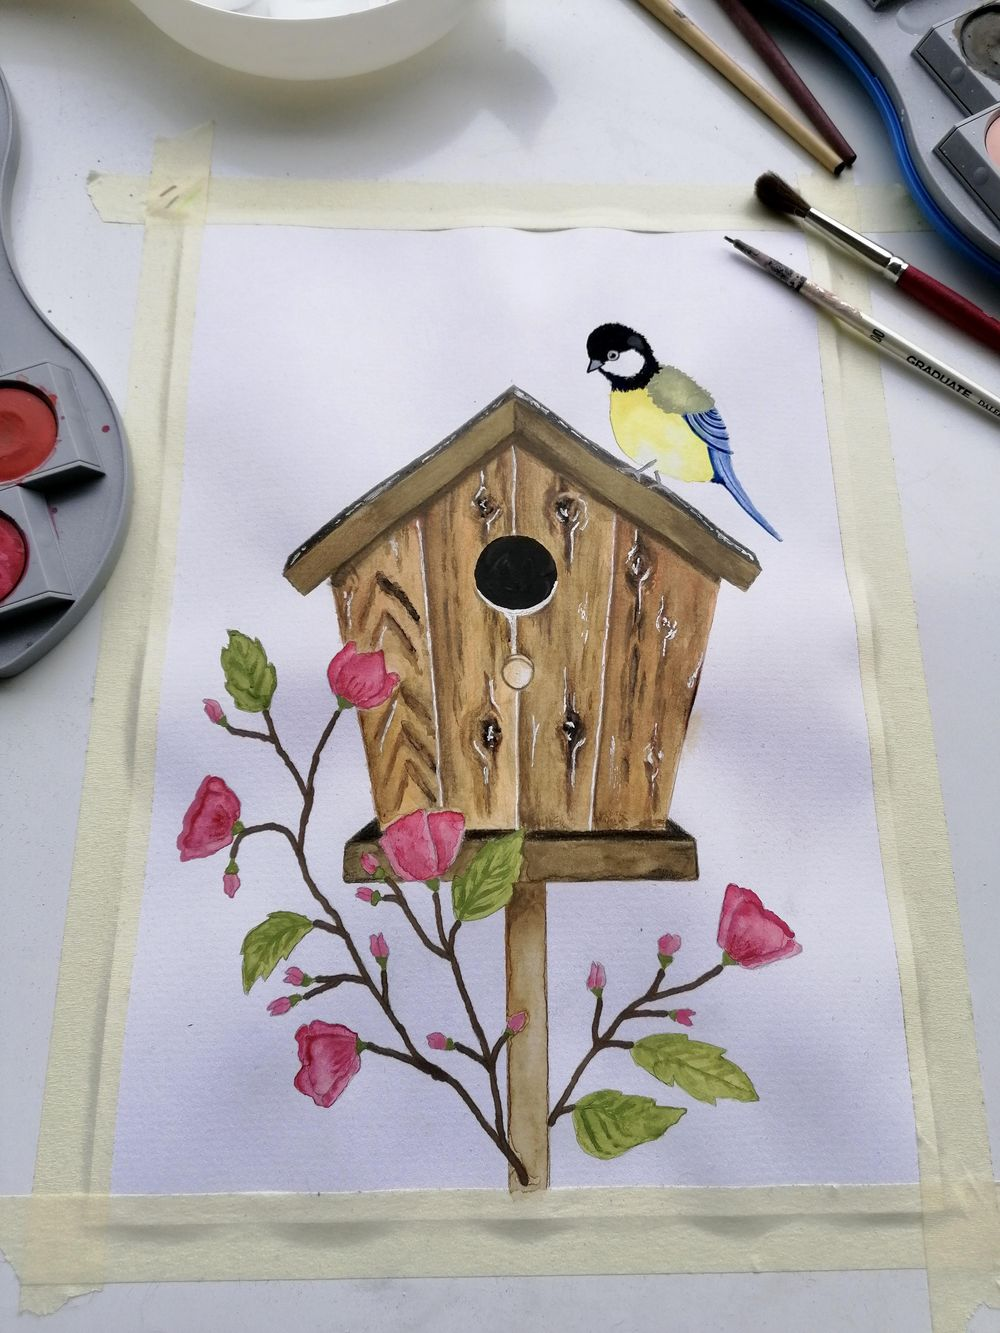 Birdhouse - image 1 - student project